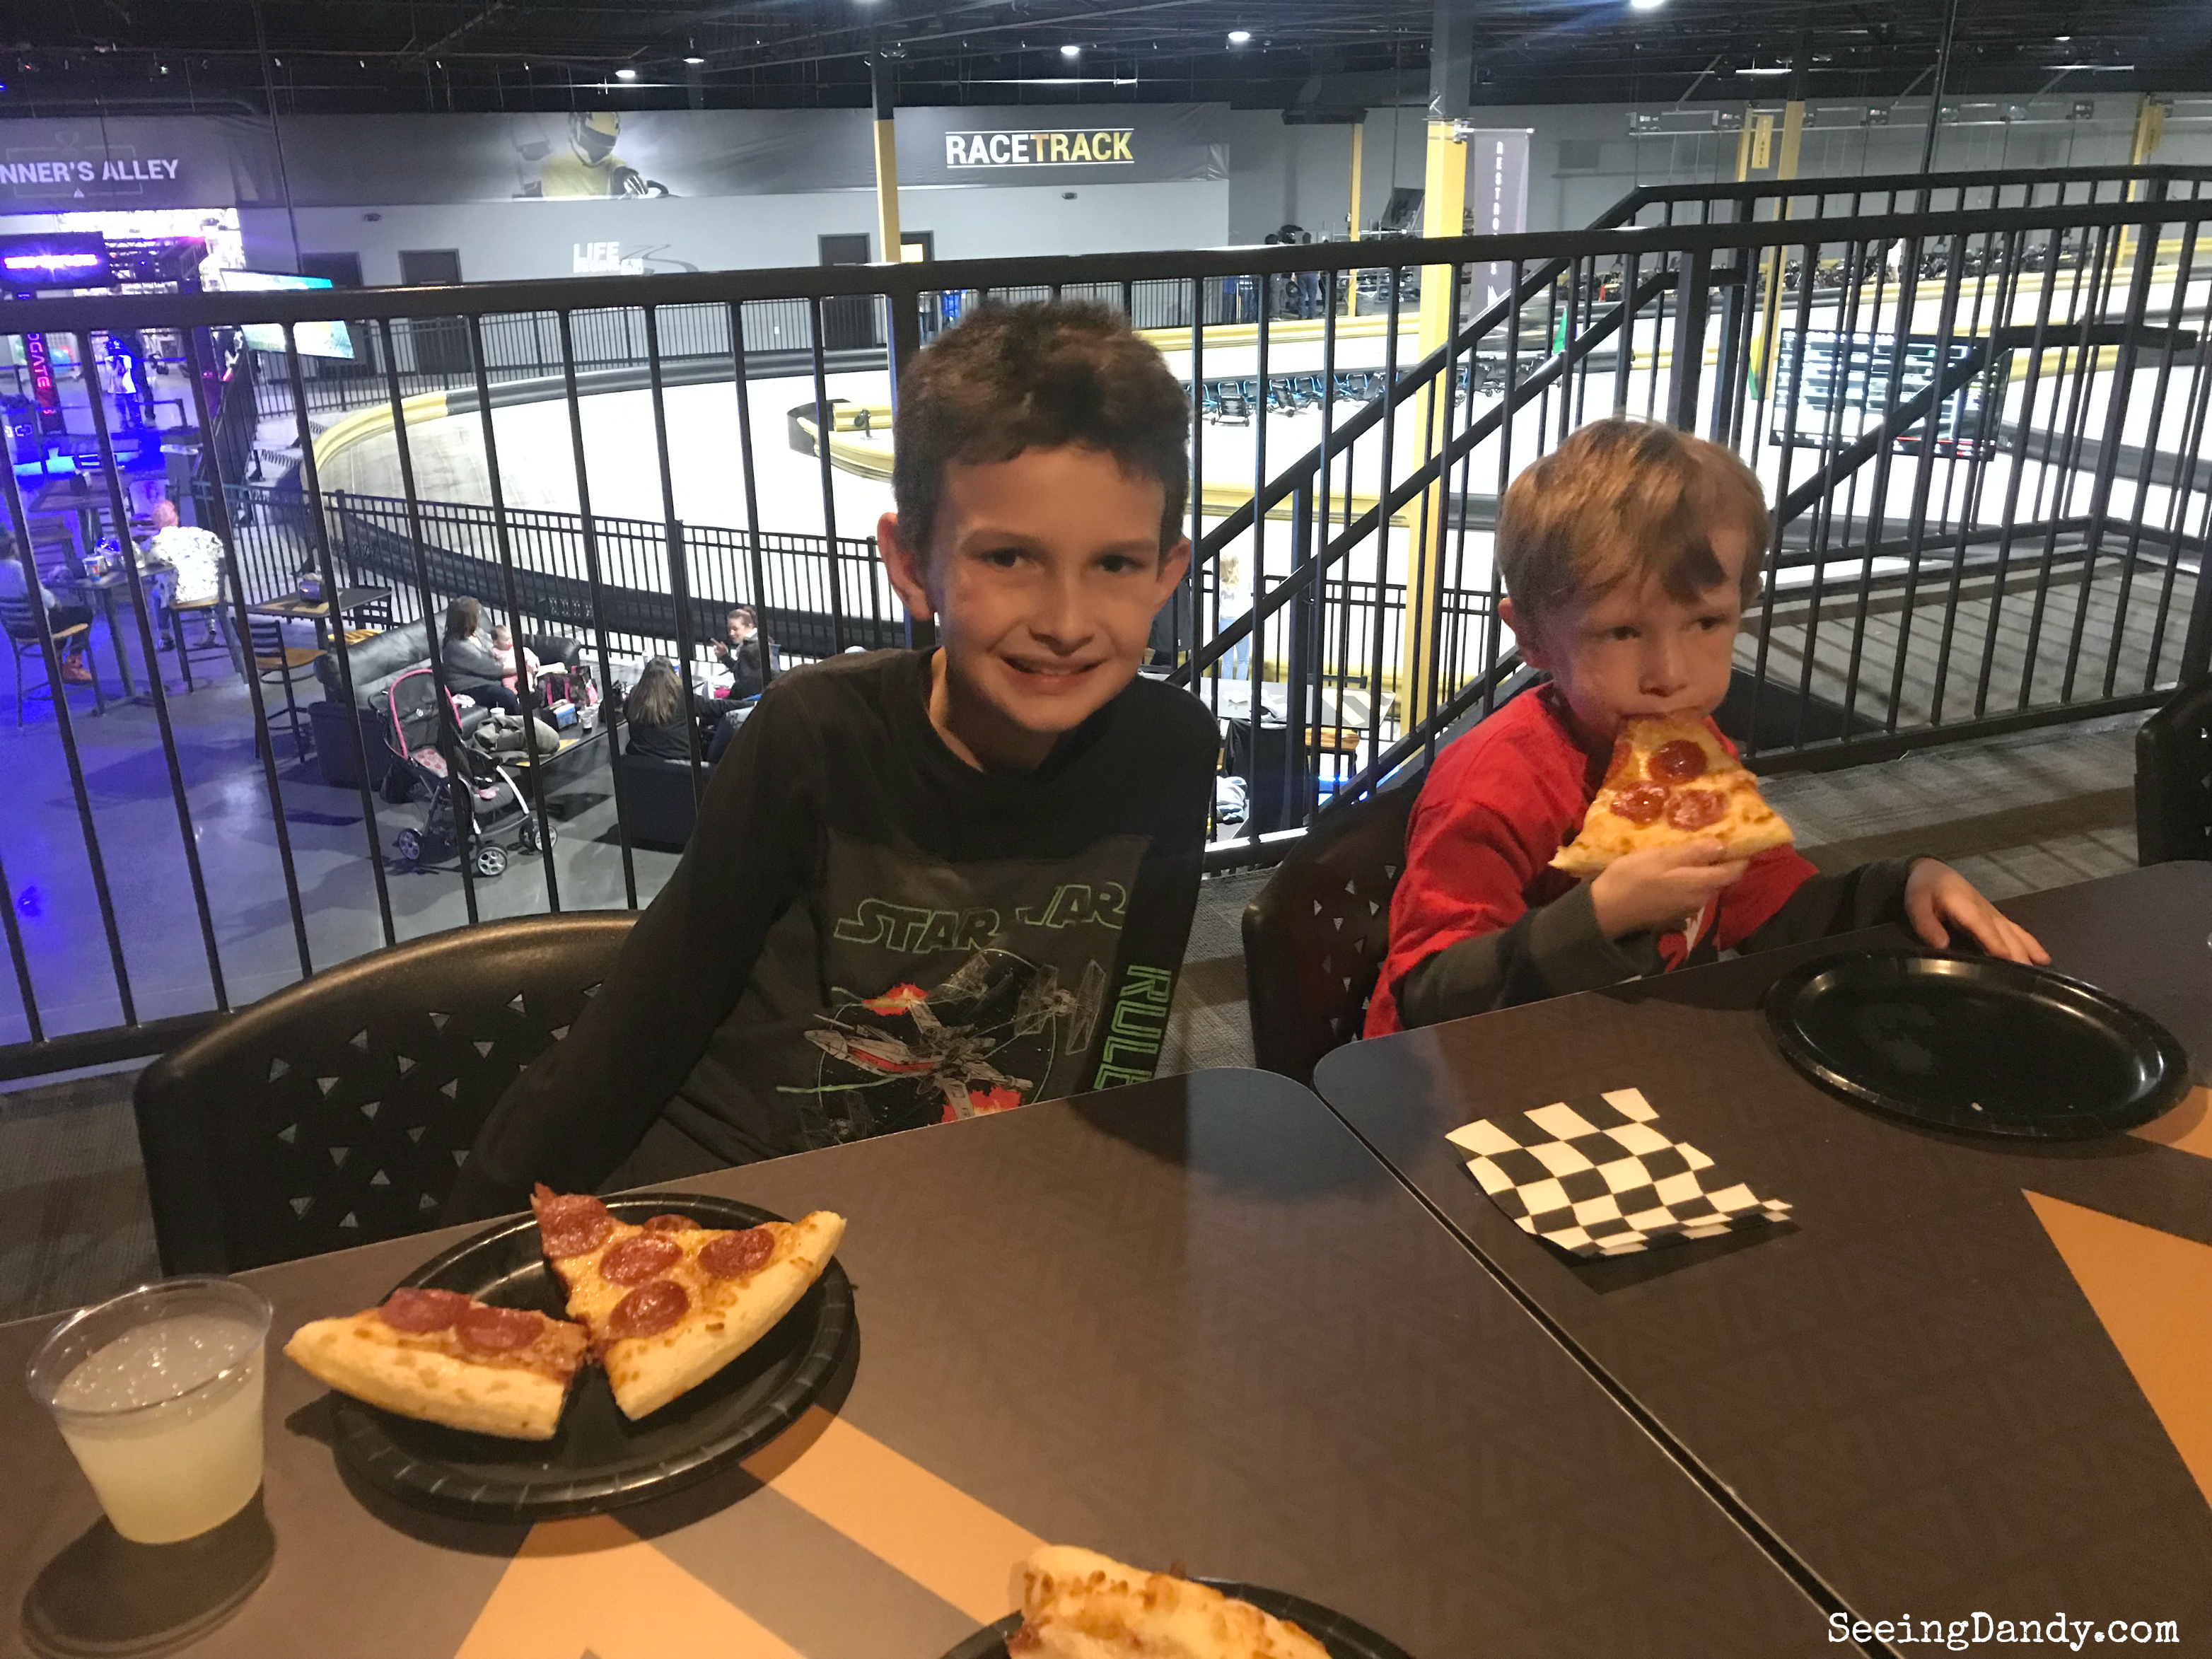 Kids eating pizza and drinking lemonade with checkerboard napkins.